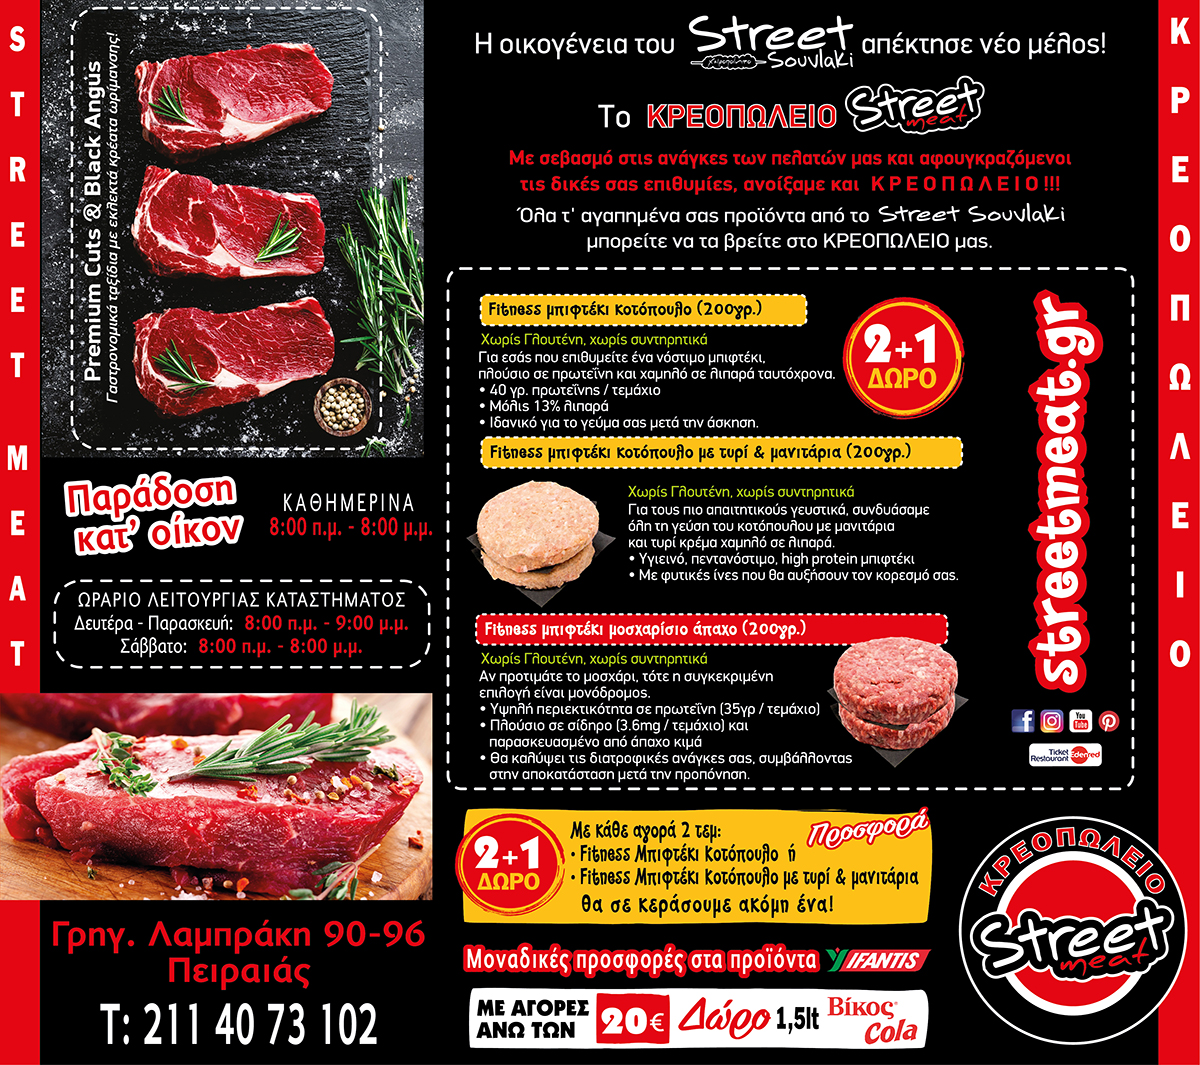 STREET MEAT BANNER GIA SITE b